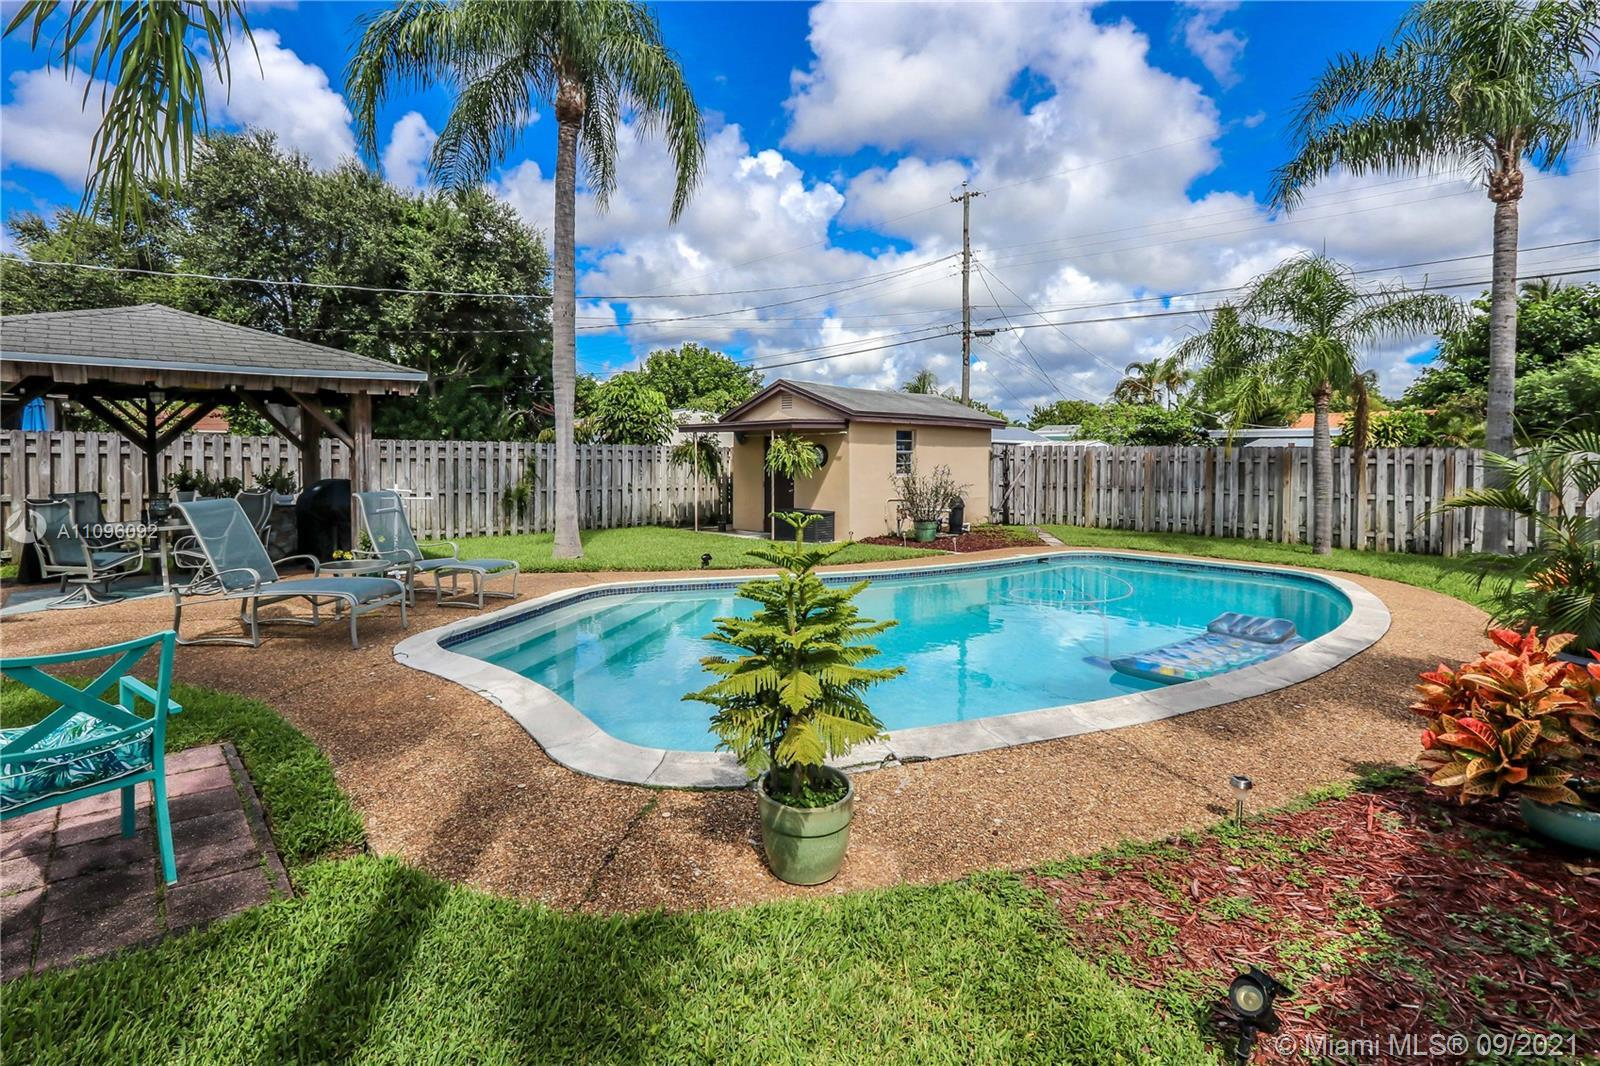 GREAT LOCATION 2 BED / 1 ½ BATH BEAUTIFUL POOL HOME! FEATURES LARGE FOYER ENTRANCE USED AS A DINING